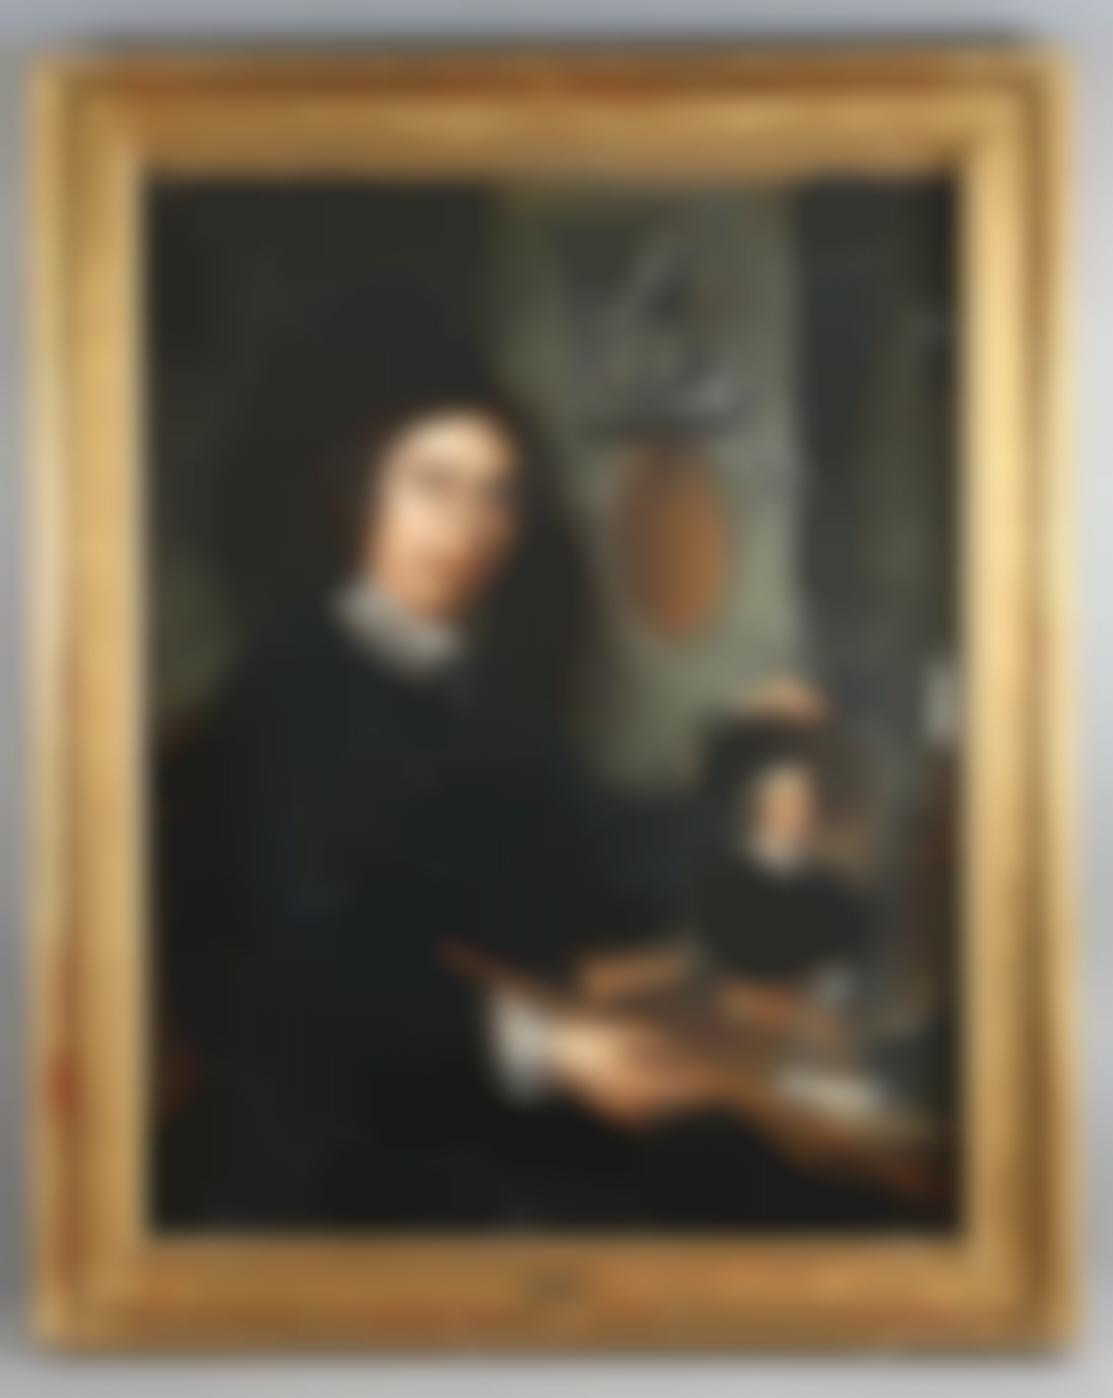 Attributed To Molenaer, Jan Miense - Self-portrait of the painter in his studio, holding a portrait of Van der Helst and recorded at the bottom of Franz Hals-